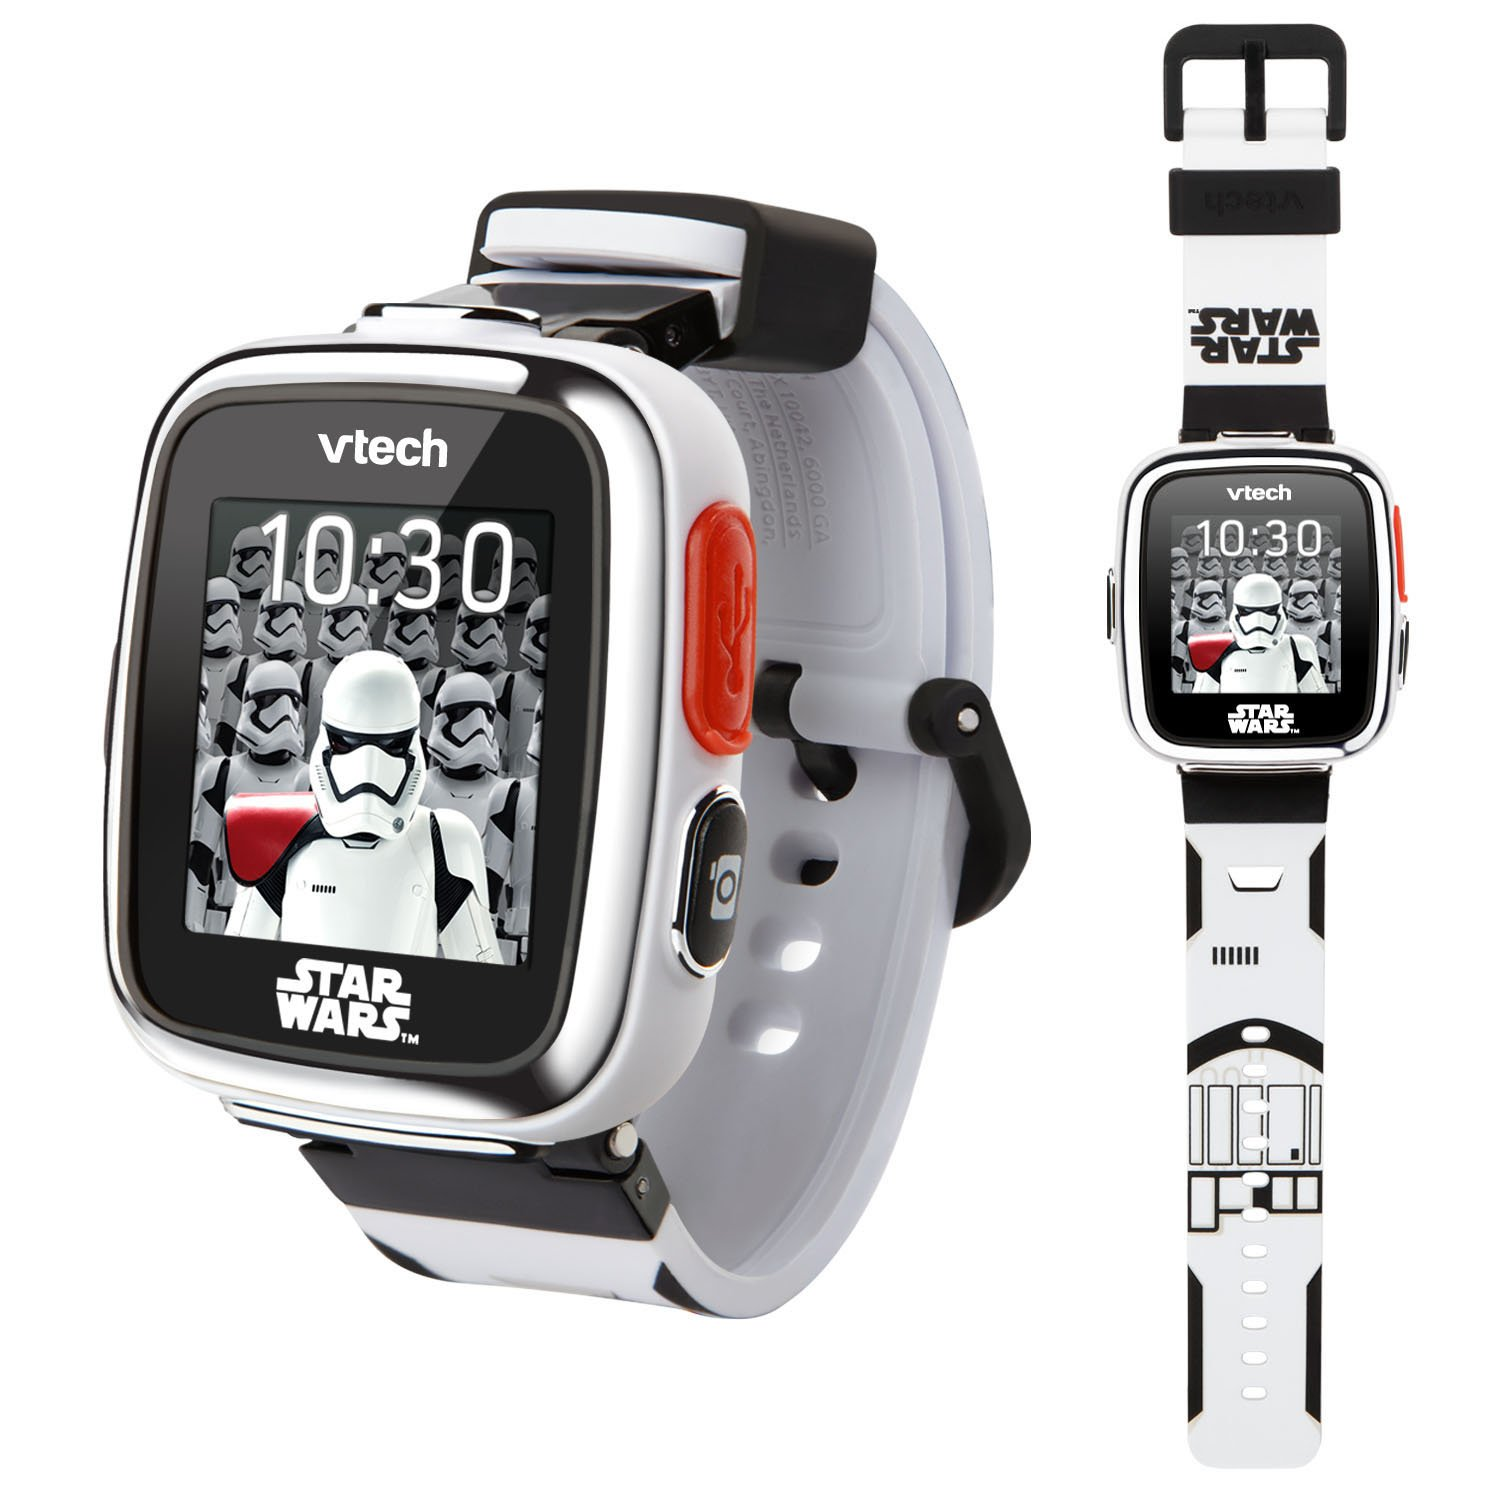 VTech Star Wars First Order Stormtrooper Smartwatch with Camera Amazon Exclusive White